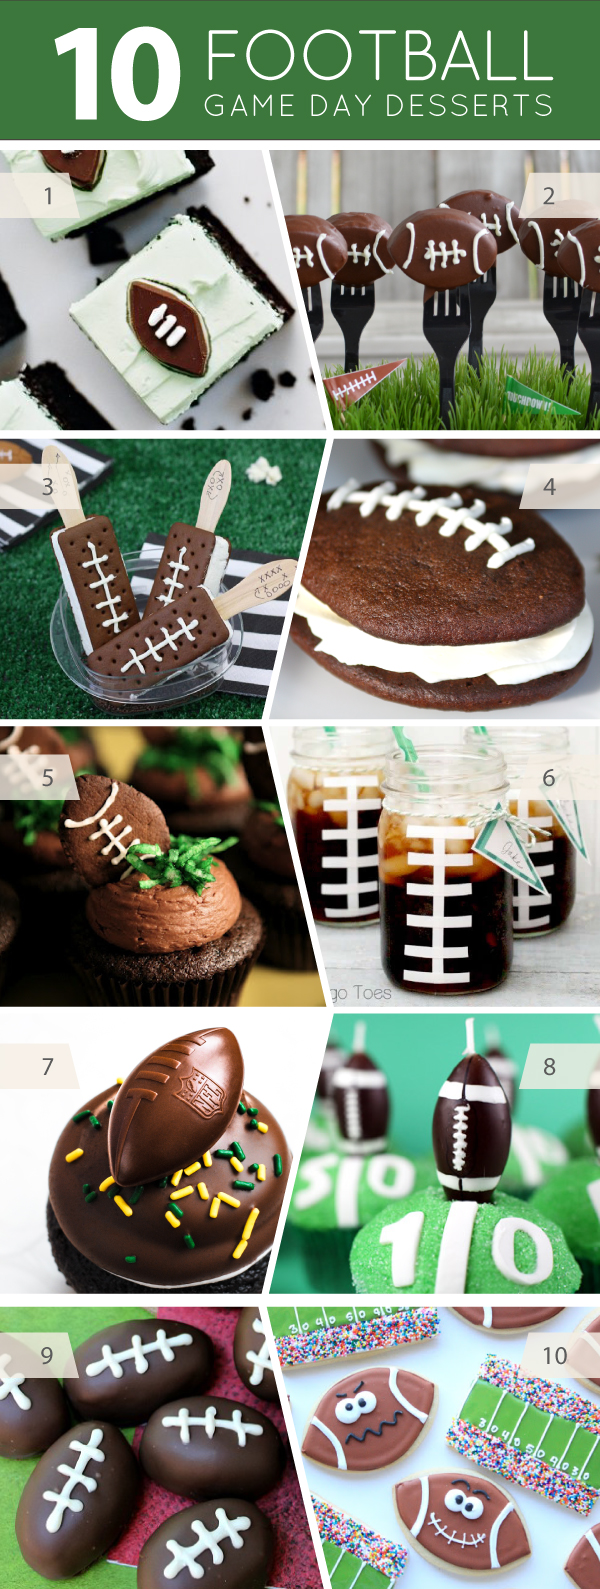 10 Football Party Desserts to make for game day tailgating | on TheCakeBlog.com